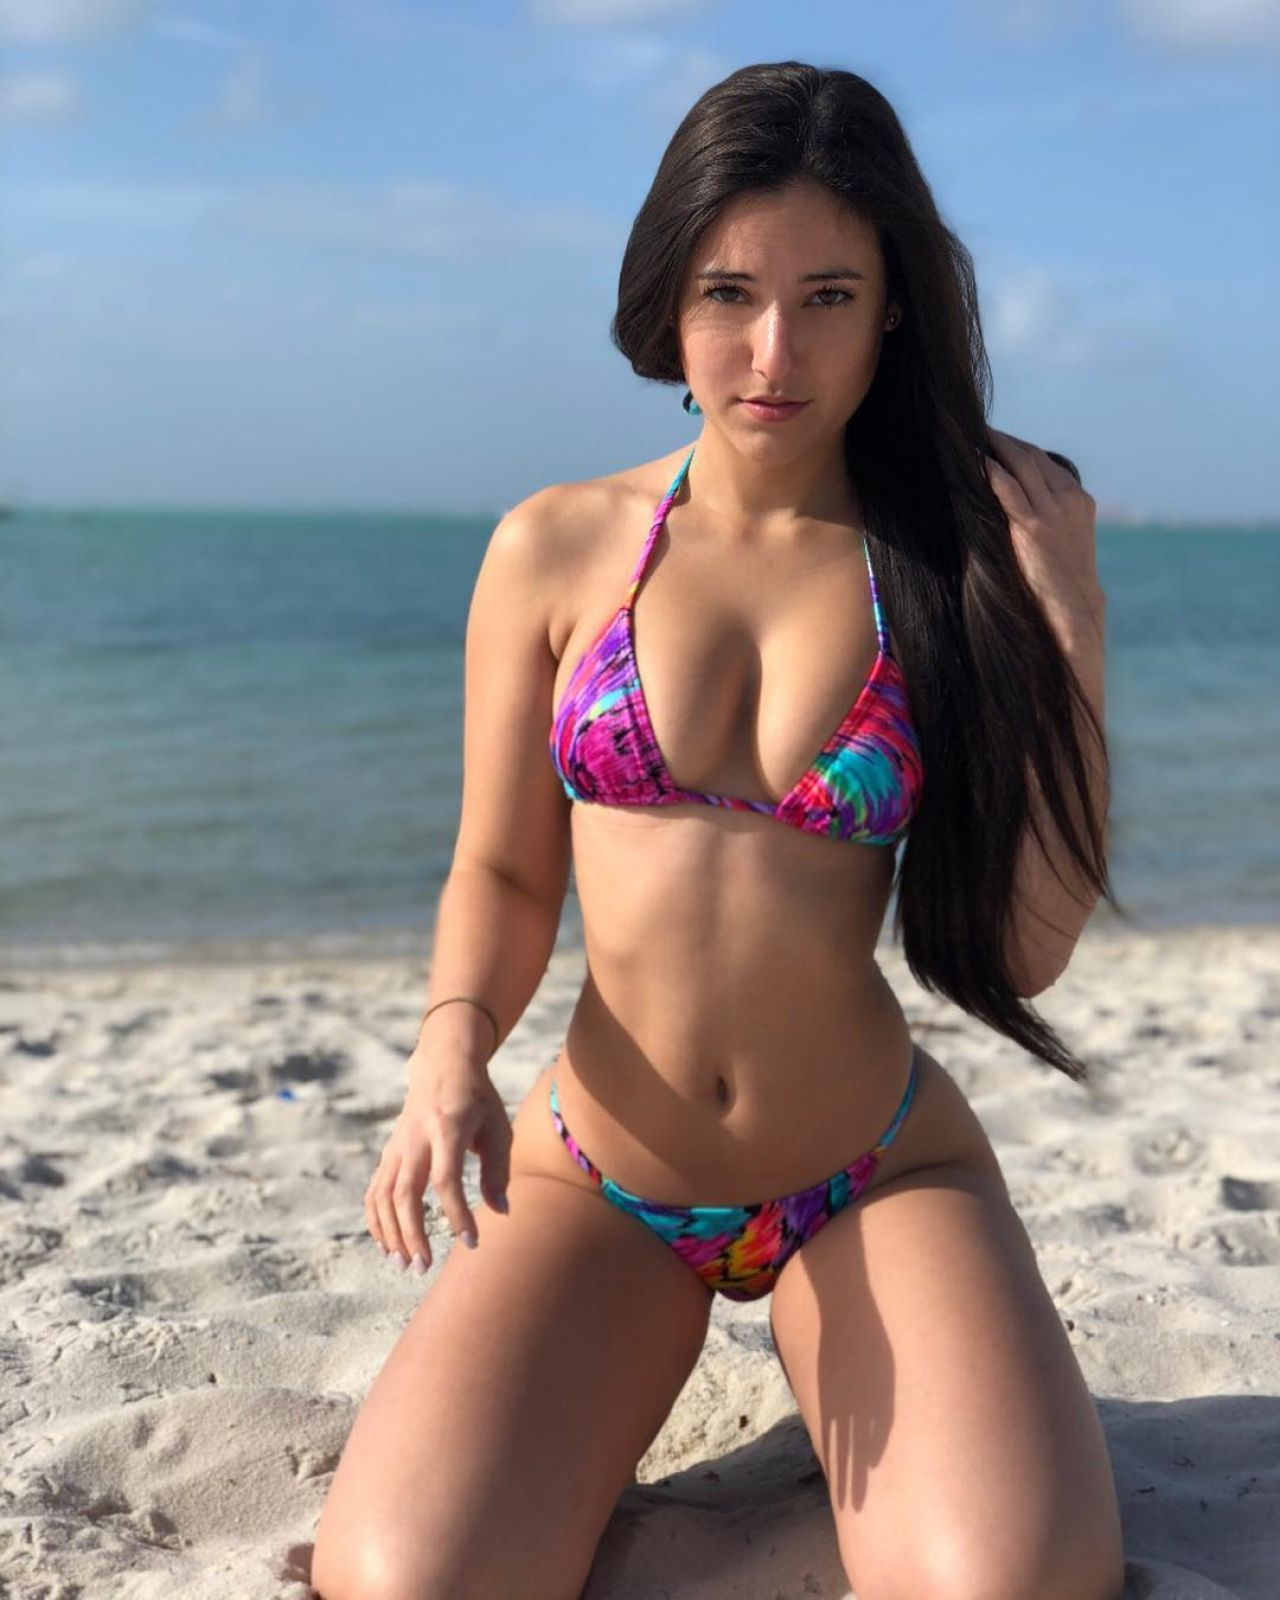 Angie Varona Fotos angie varona in bikini - social media, april 2018